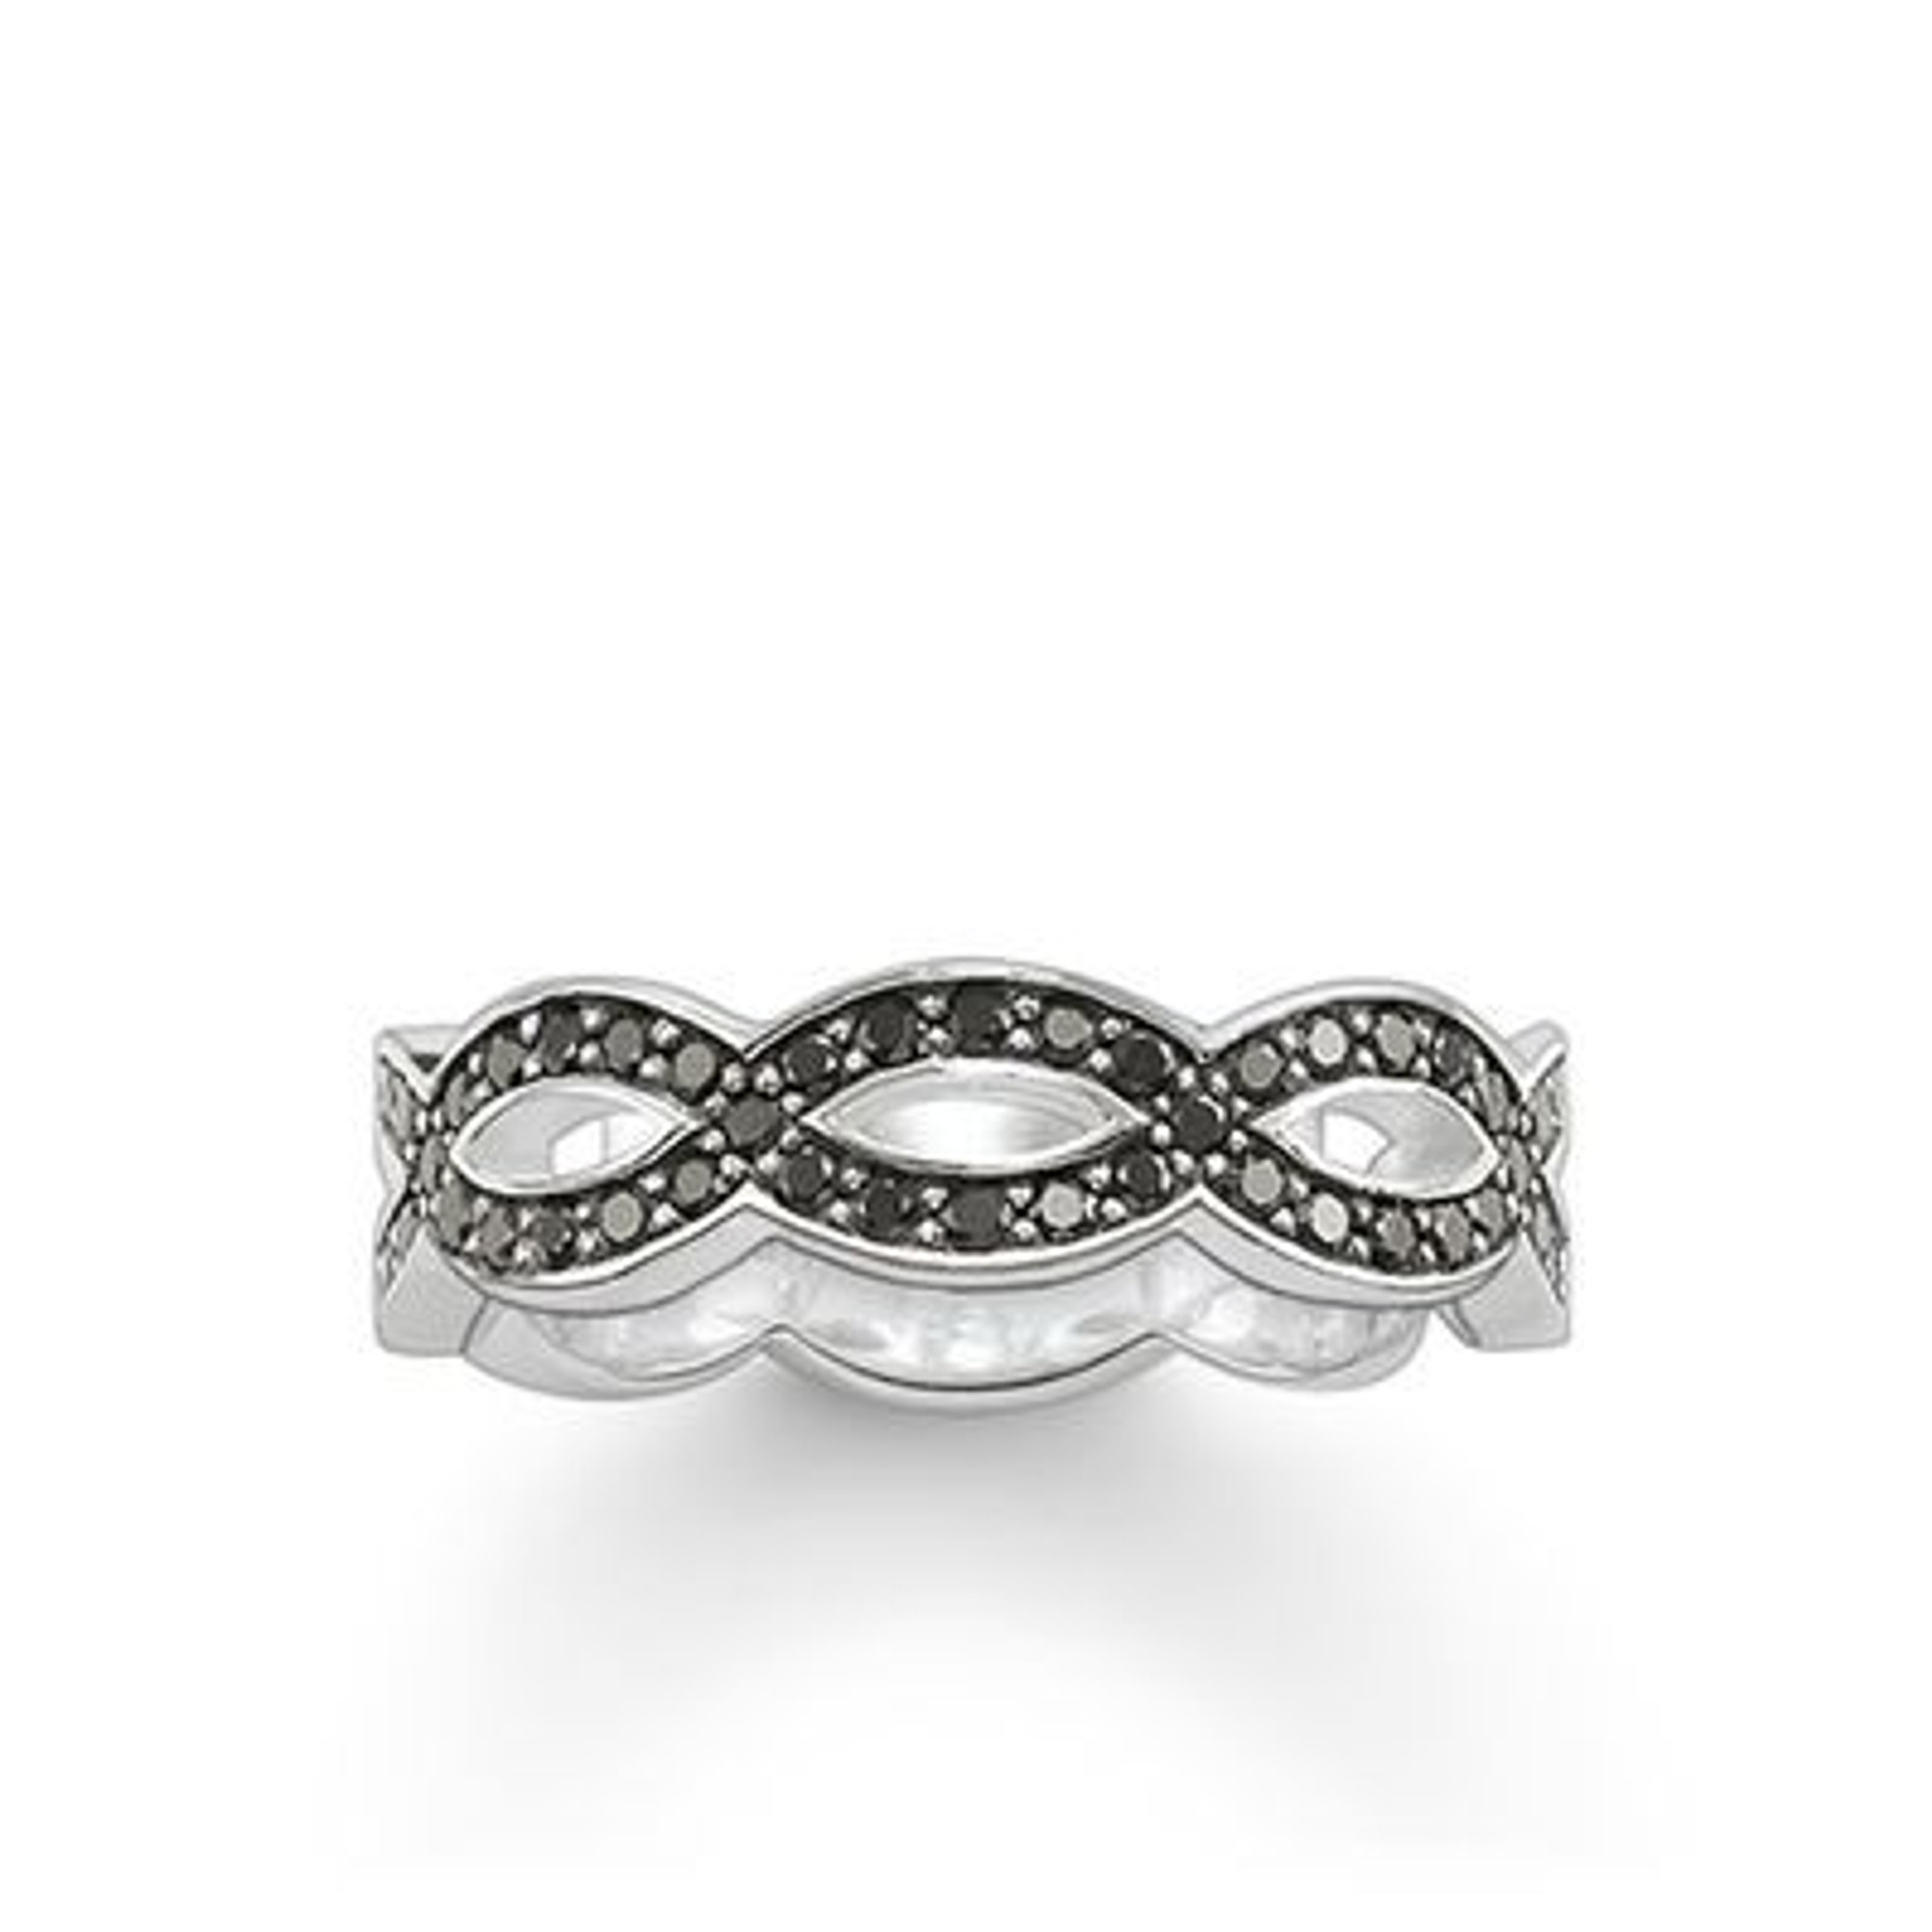 THOMAS SABO Ring TR1973-051-11-56